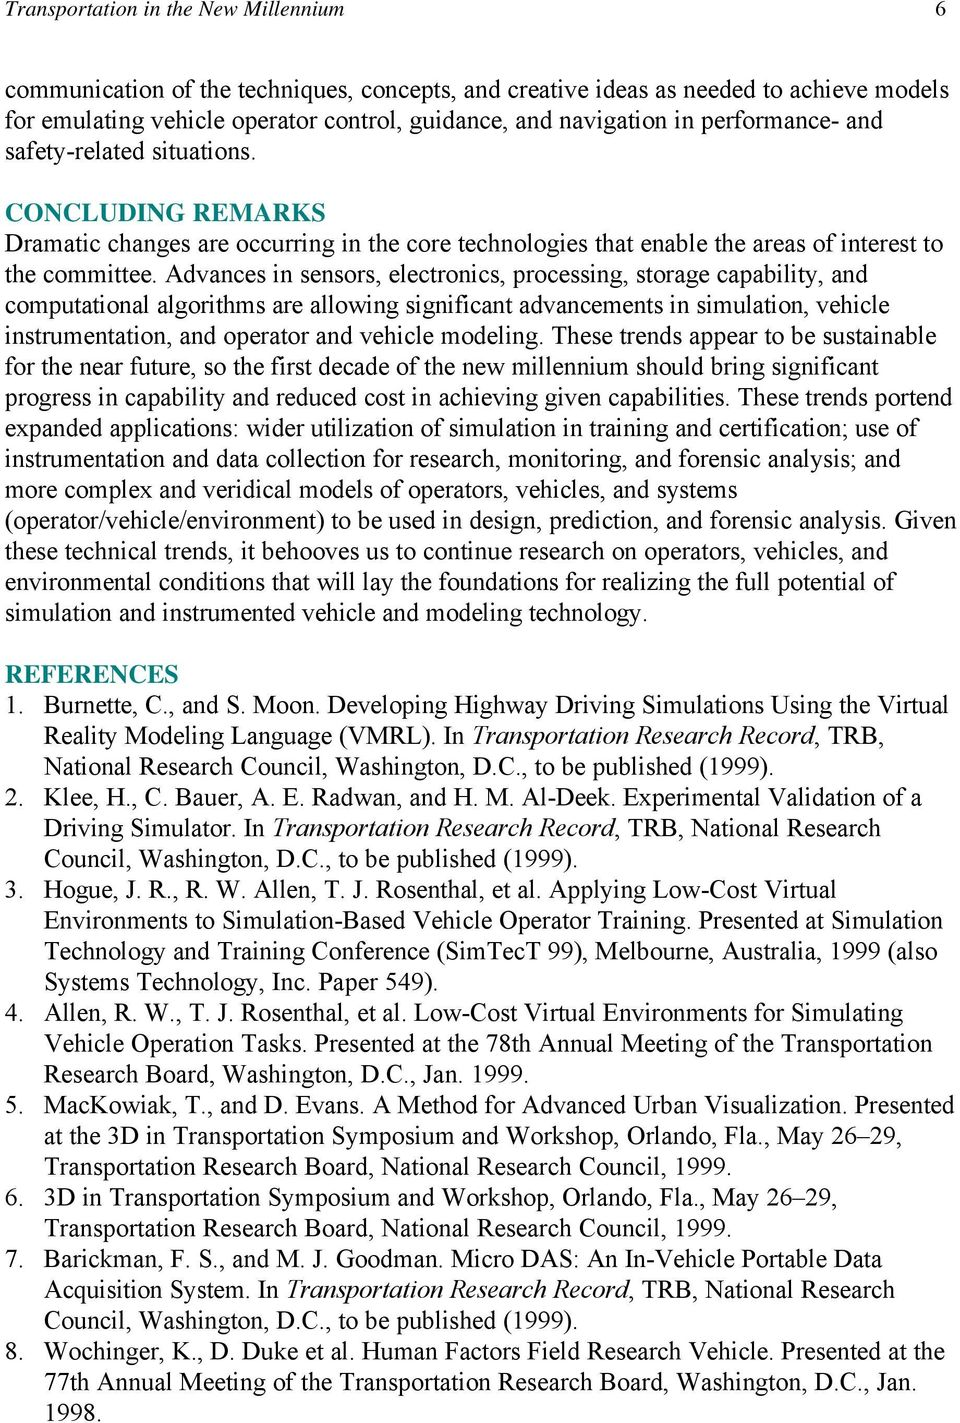 Advances in sensors, electronics, processing, storage capability, and computational algorithms are allowing significant advancements in simulation, vehicle instrumentation, and operator and vehicle